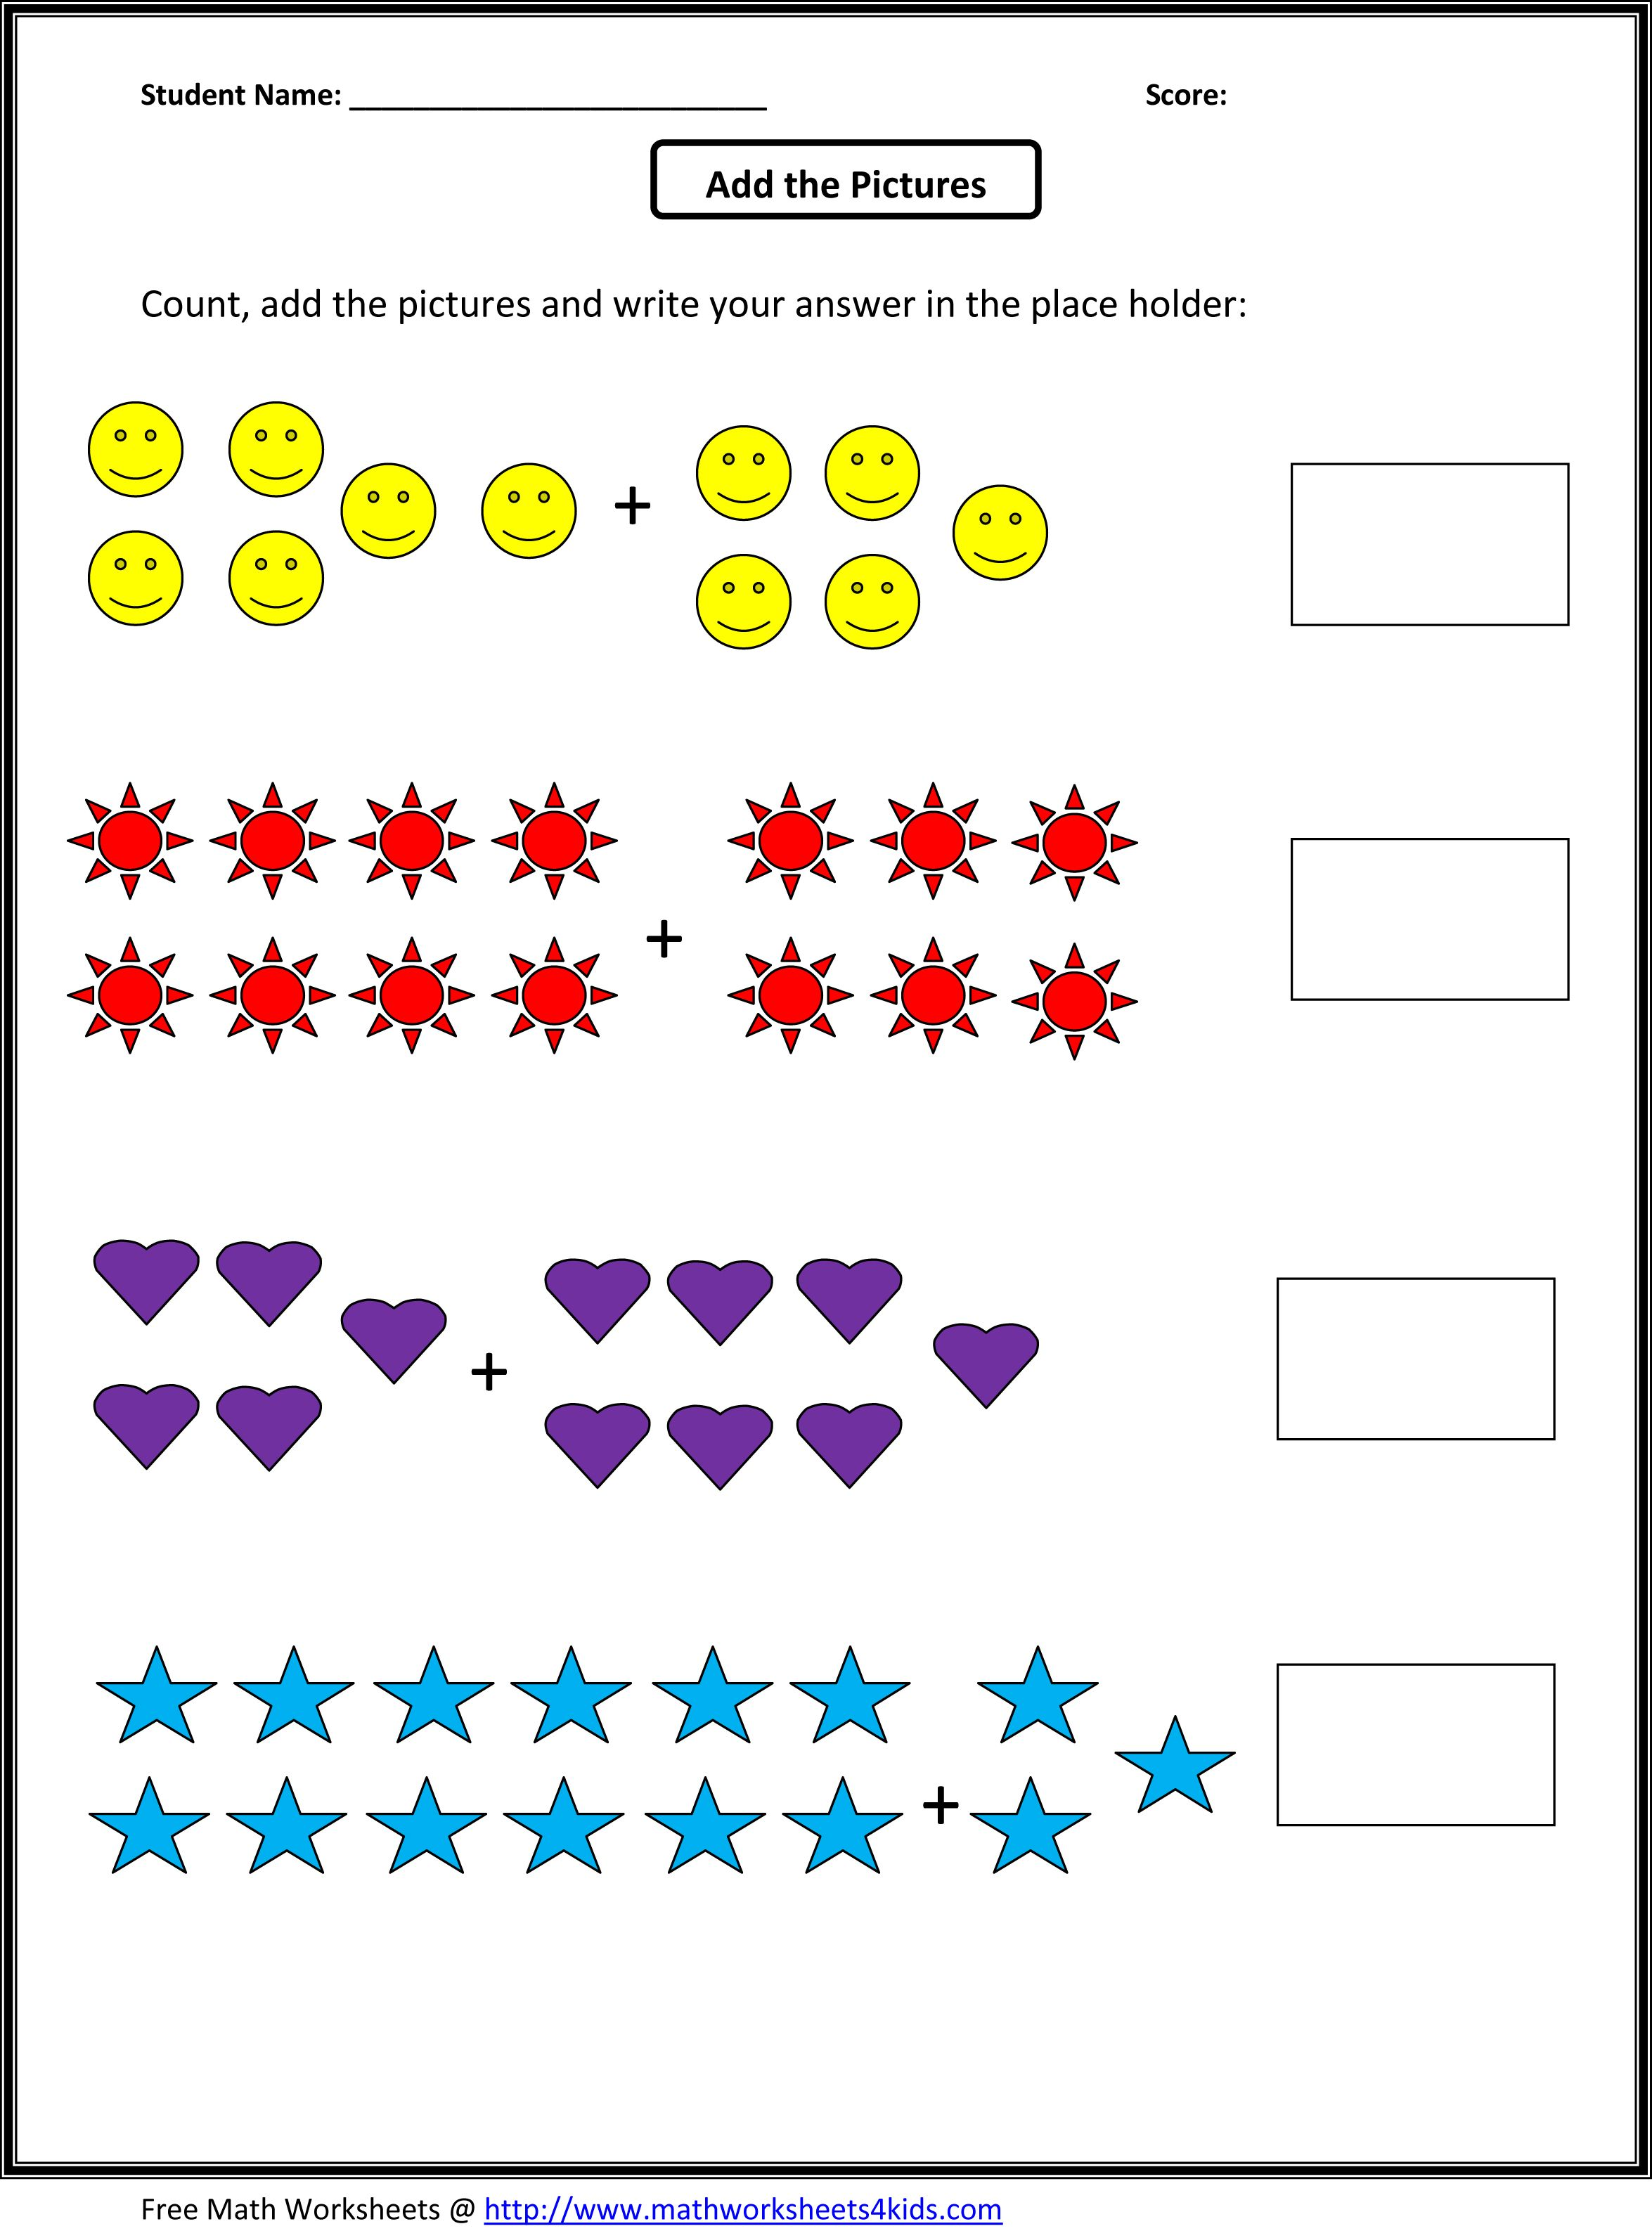 Worksheets Math Sheets For Grade 1 grade 1 addition math worksheets first worksheets